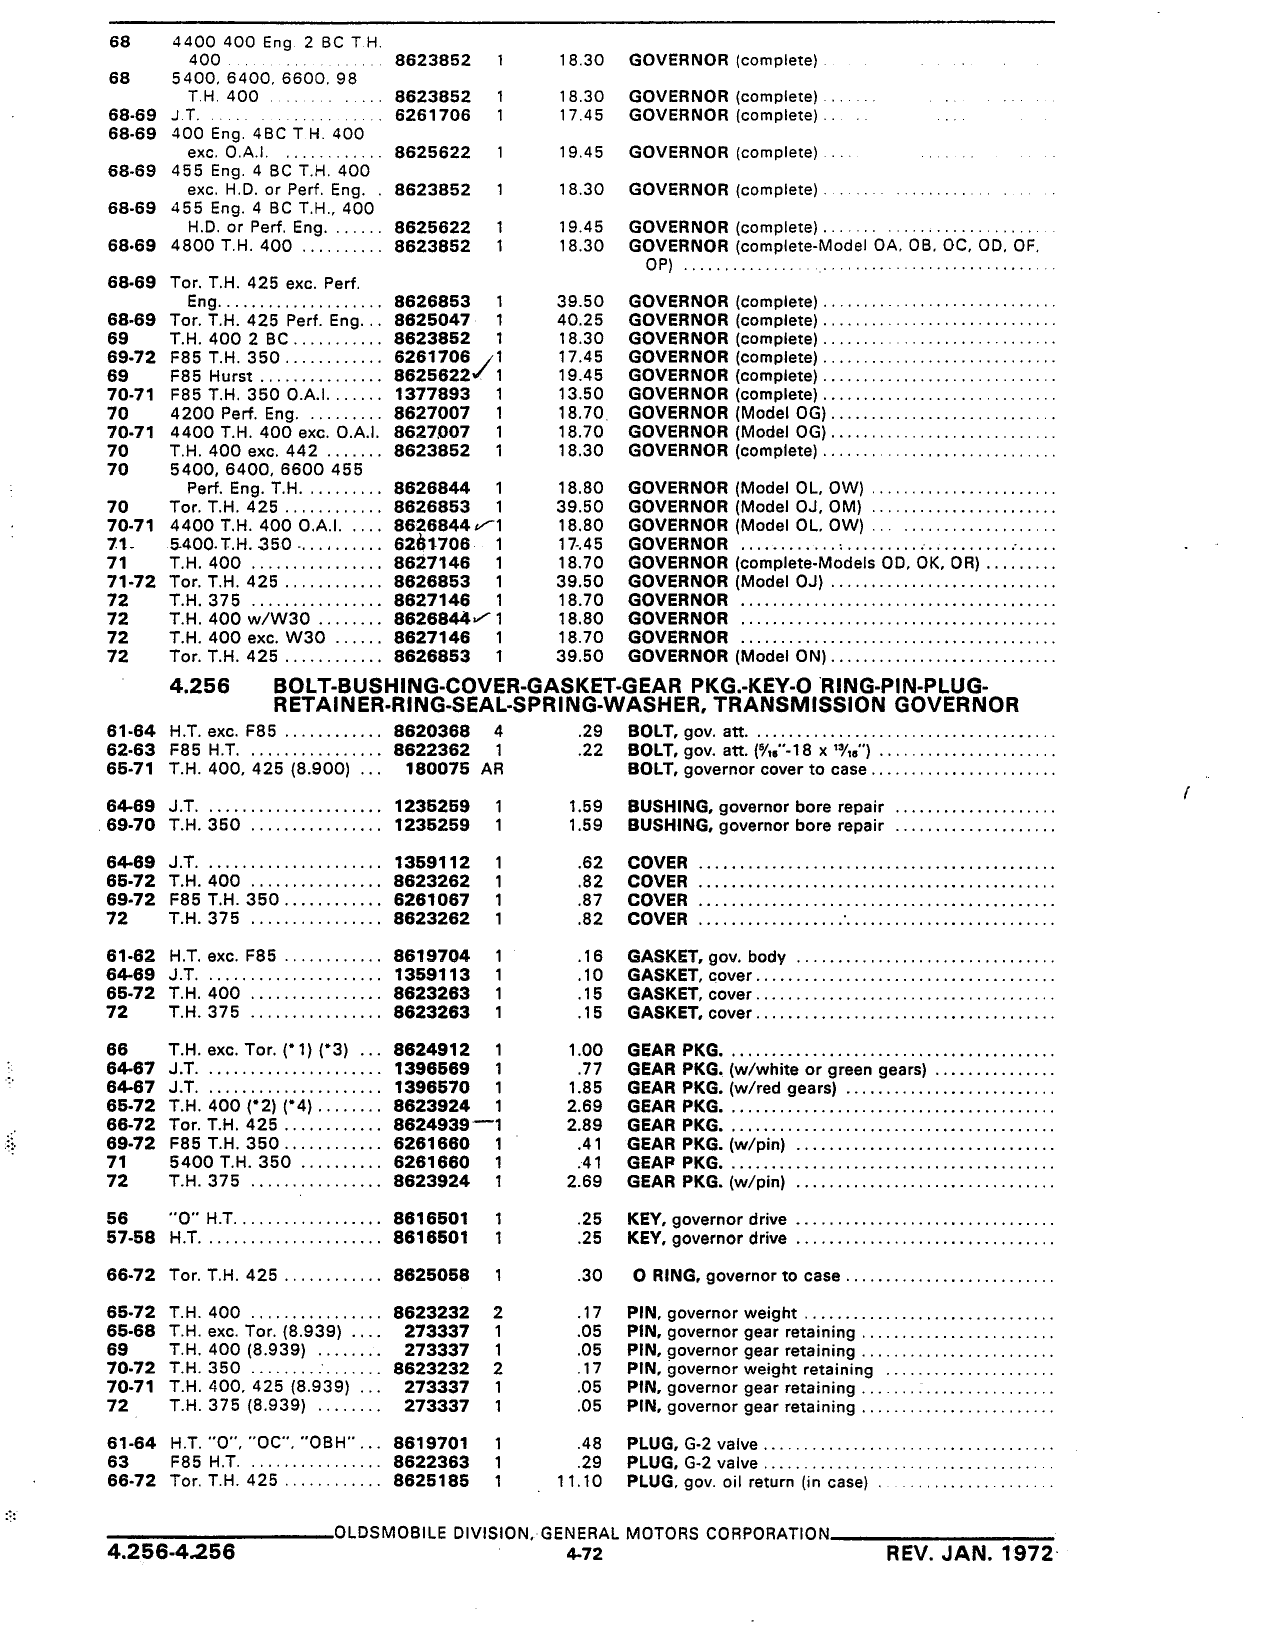 83 Chevy Truck Ke Wiring Diagram. Chevy. Auto Wiring Diagram